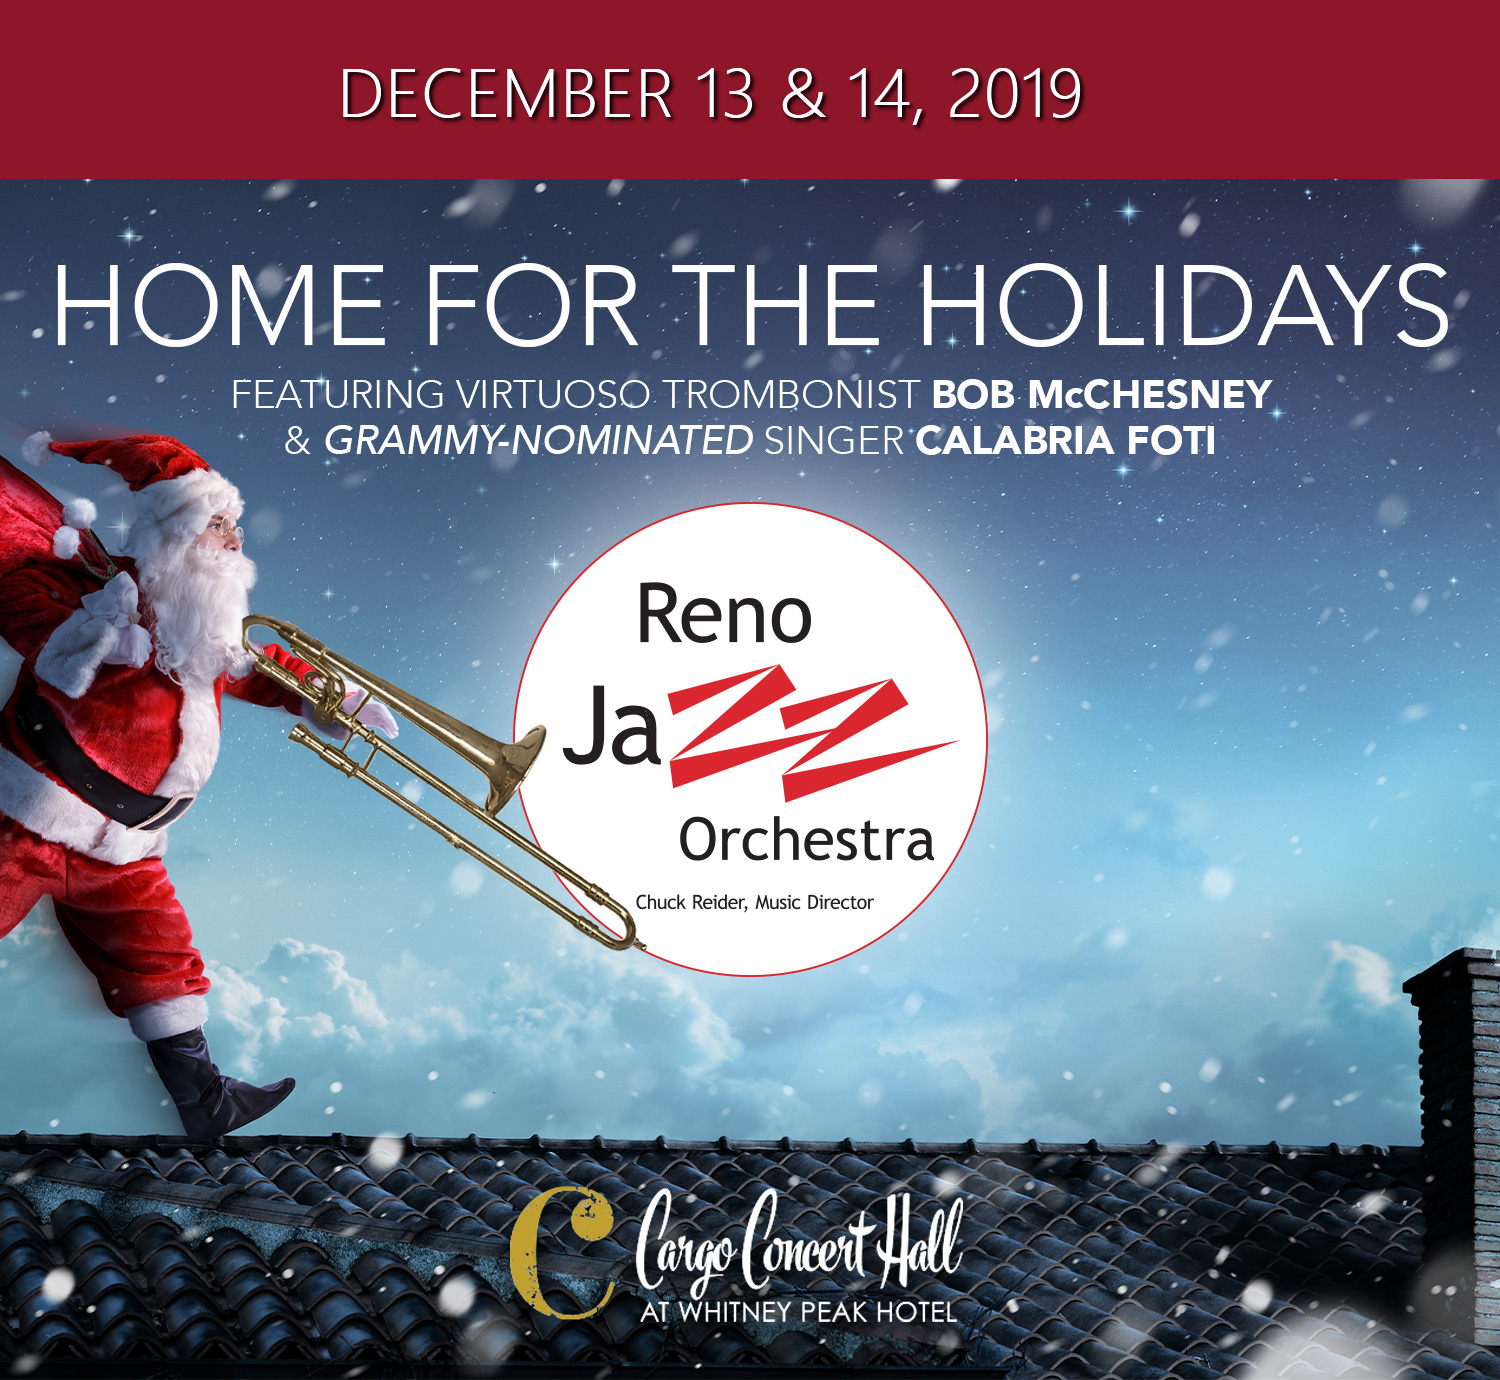 Home For The HolidaysHome For The Holidays with the Reno Jazz Orchestra